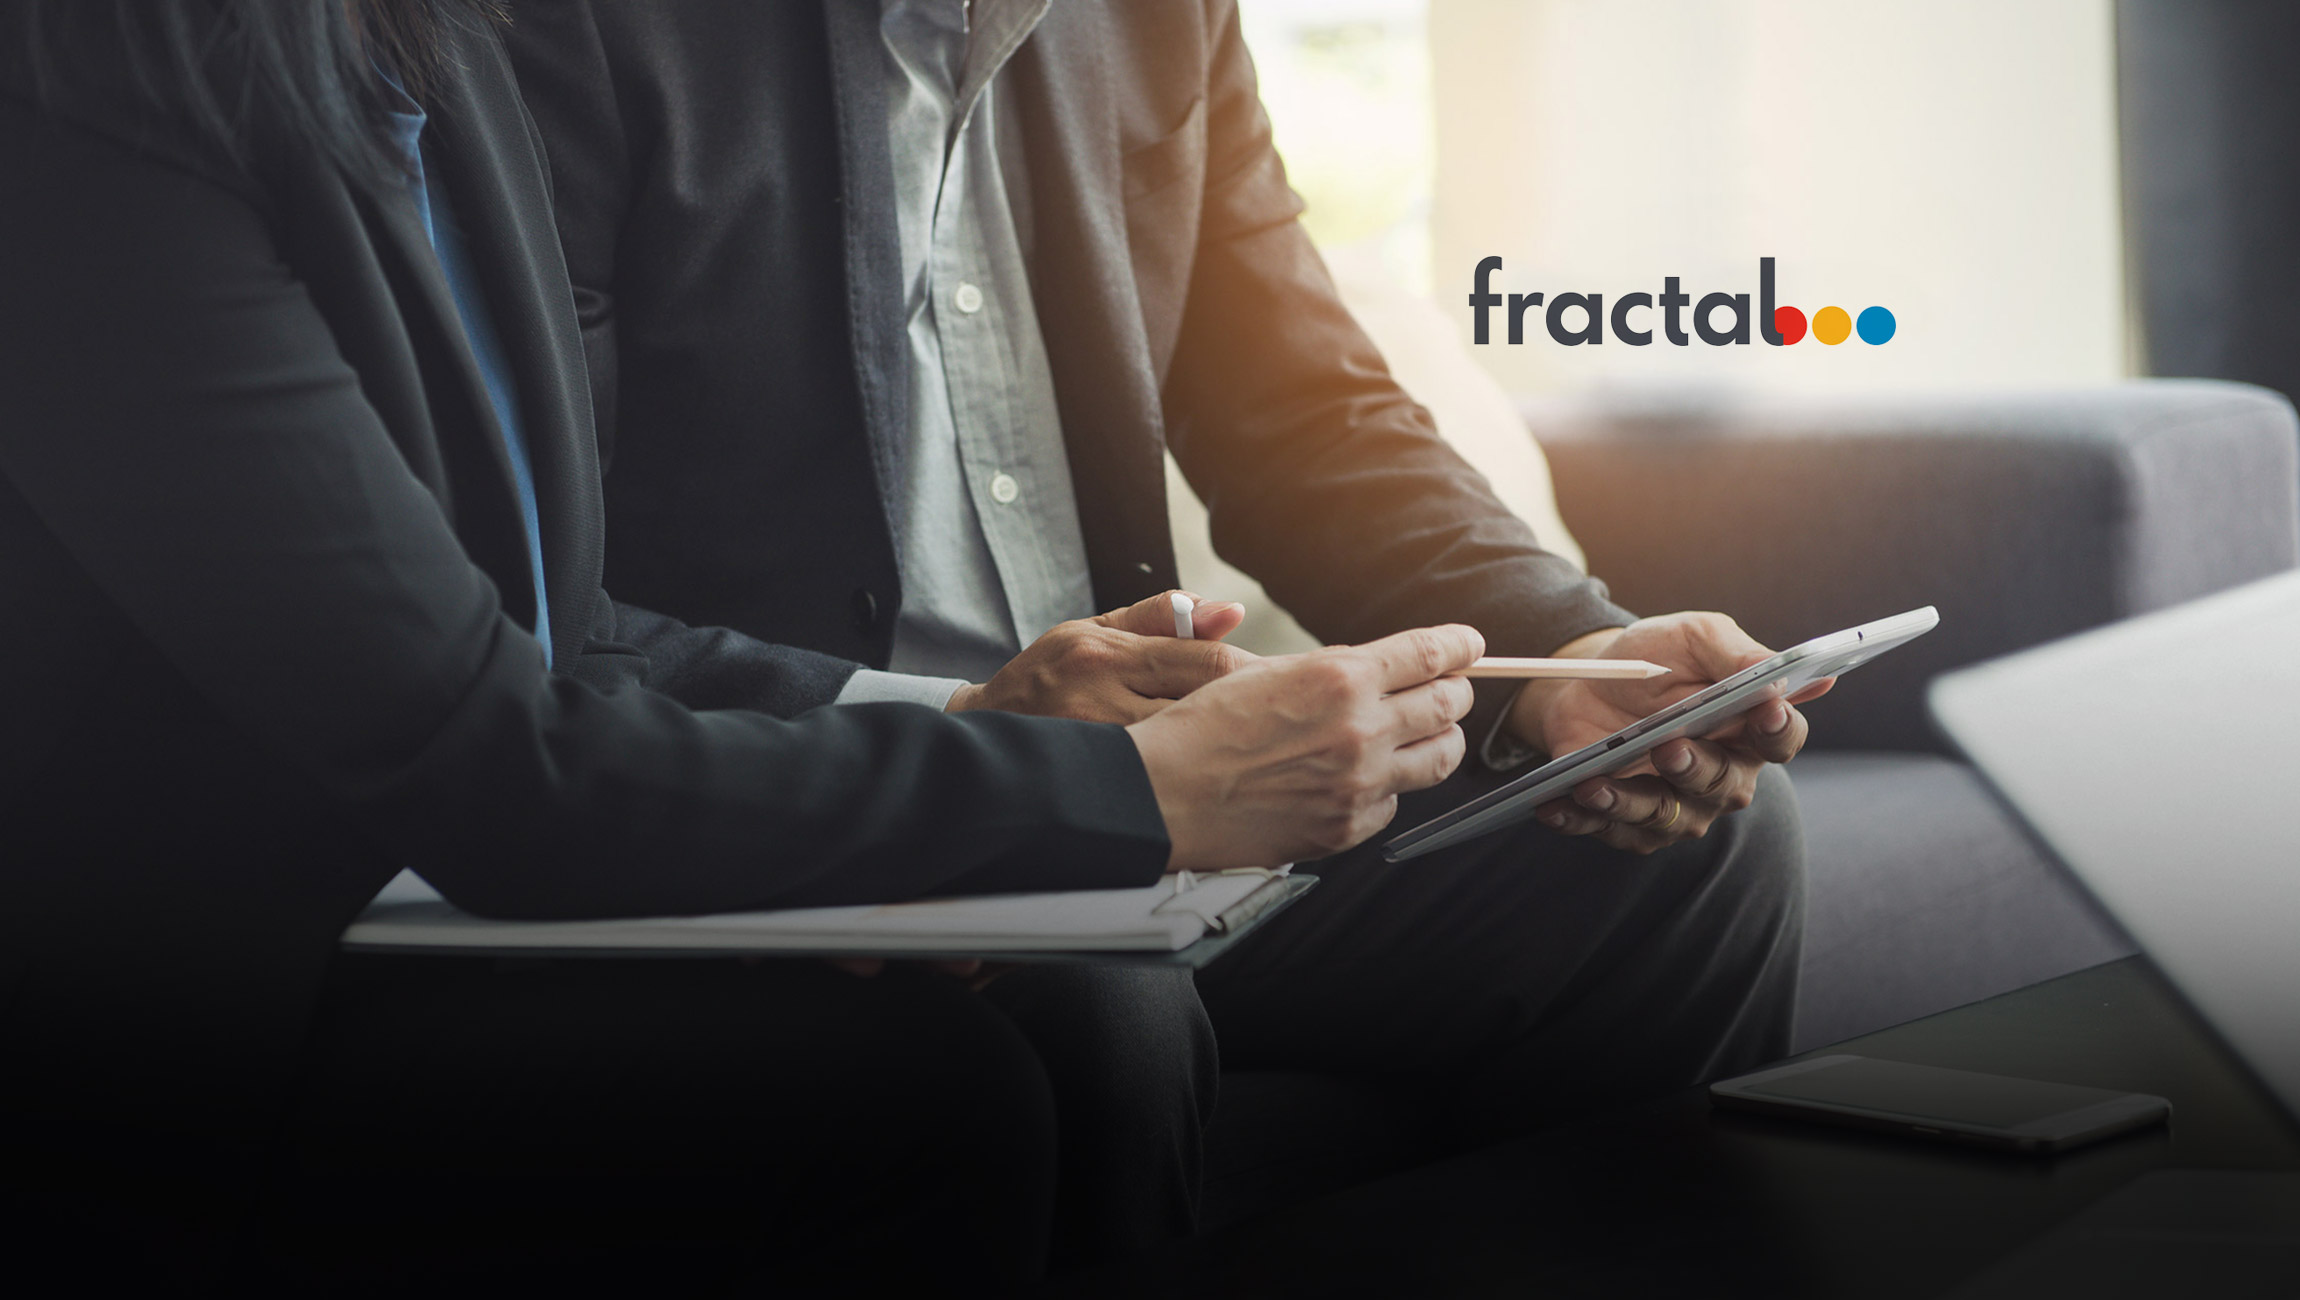 Fractal is Title Sponsor of Analytics Unite 2021: The Summit for Retail and Consumer Brands